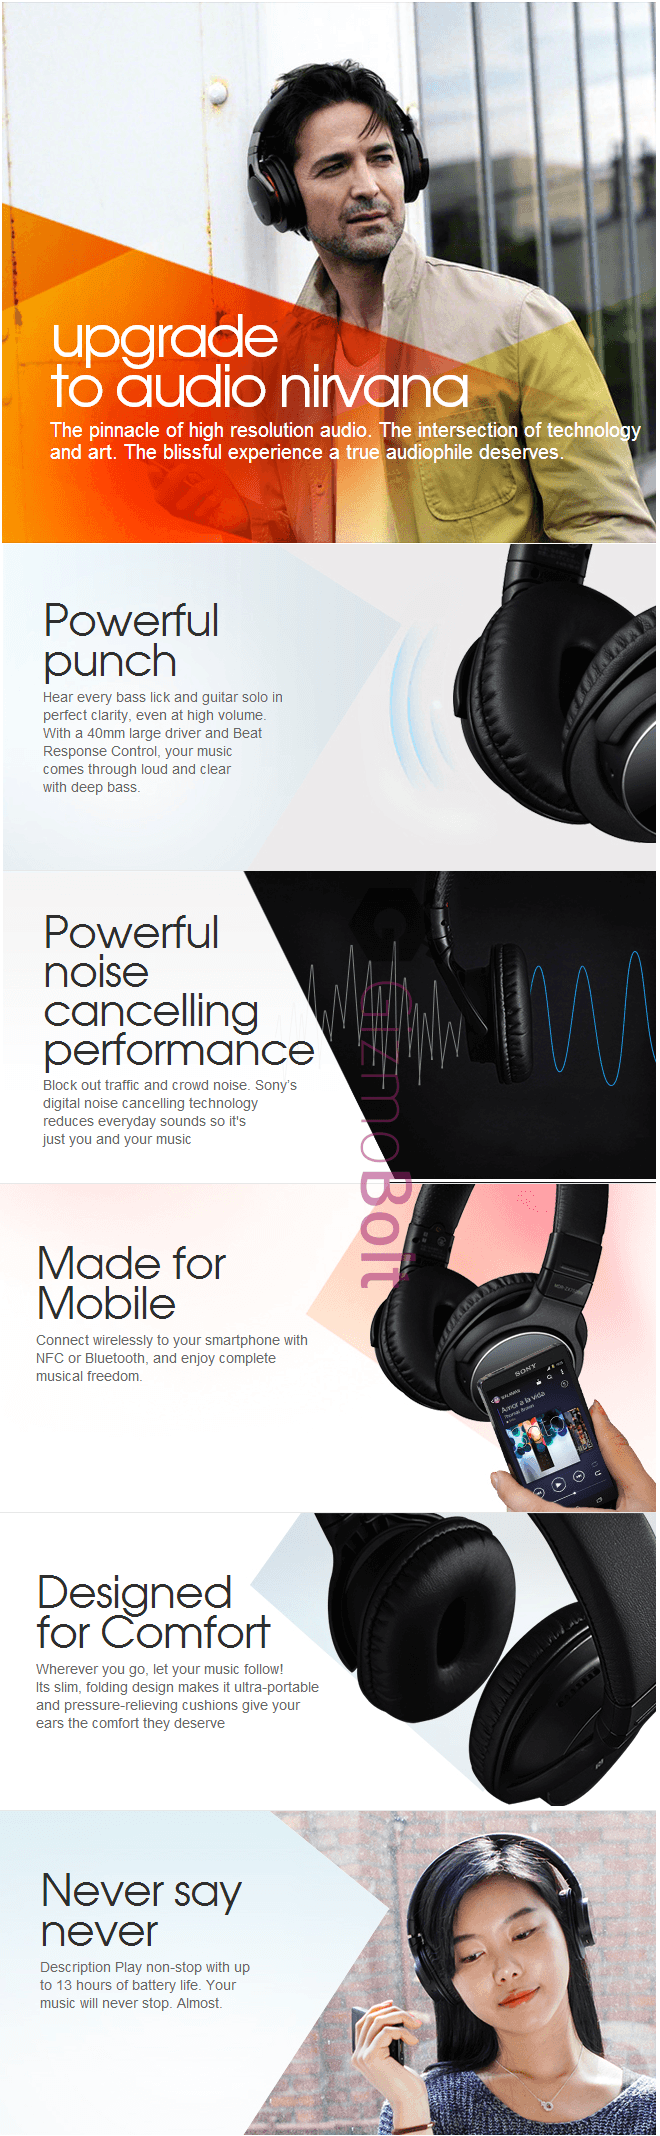 Sony MDR-ZX750BN headphones India